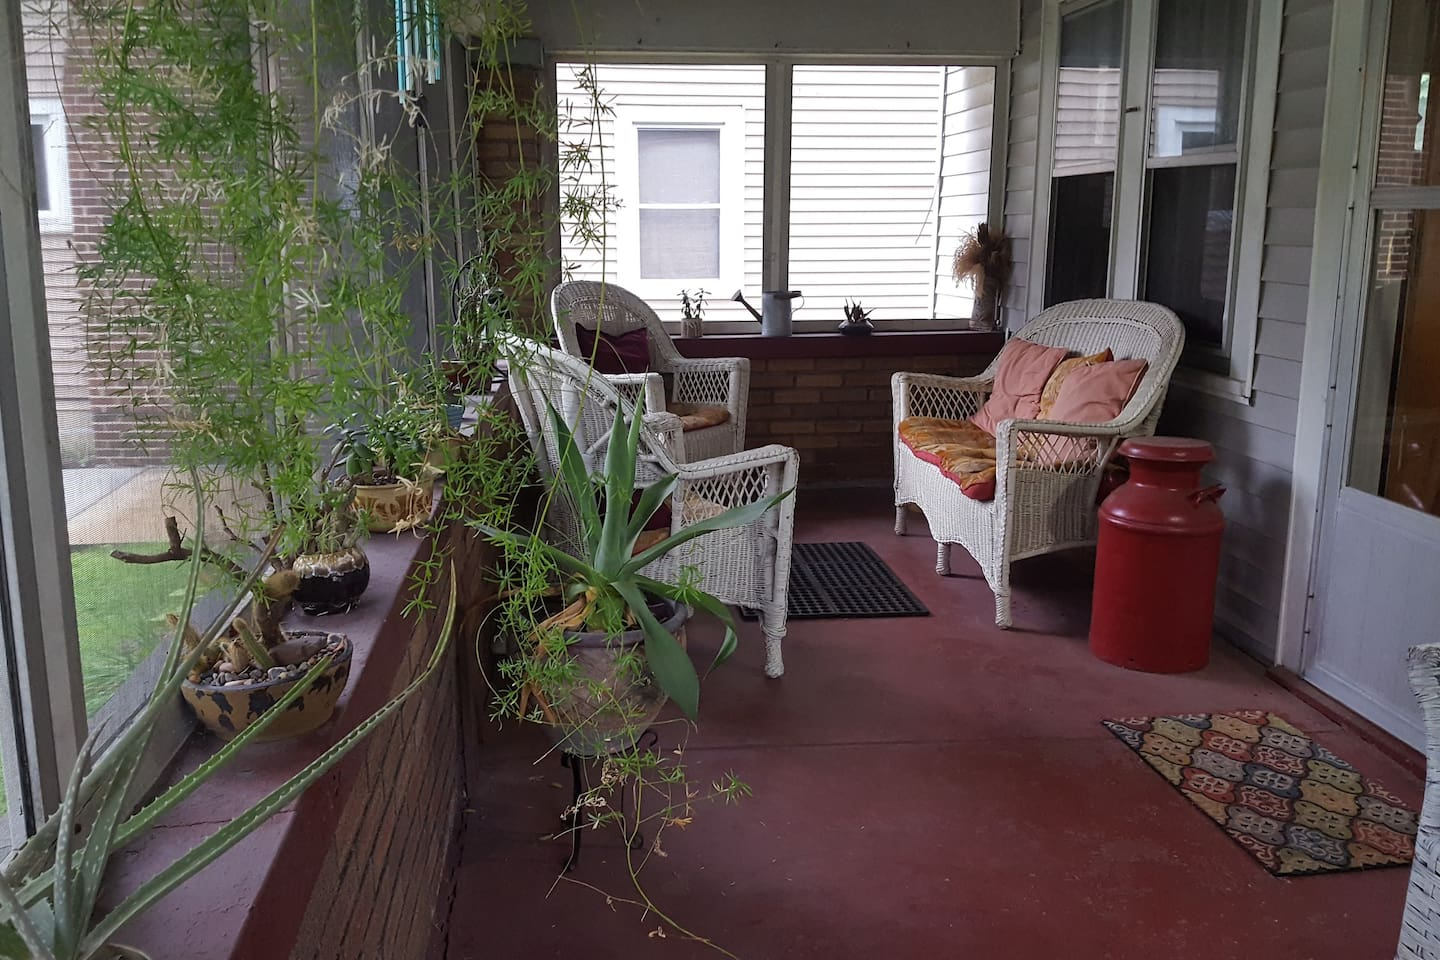 Welcome to my urban cottage! The front porch is perfect for quiet time or socializing.